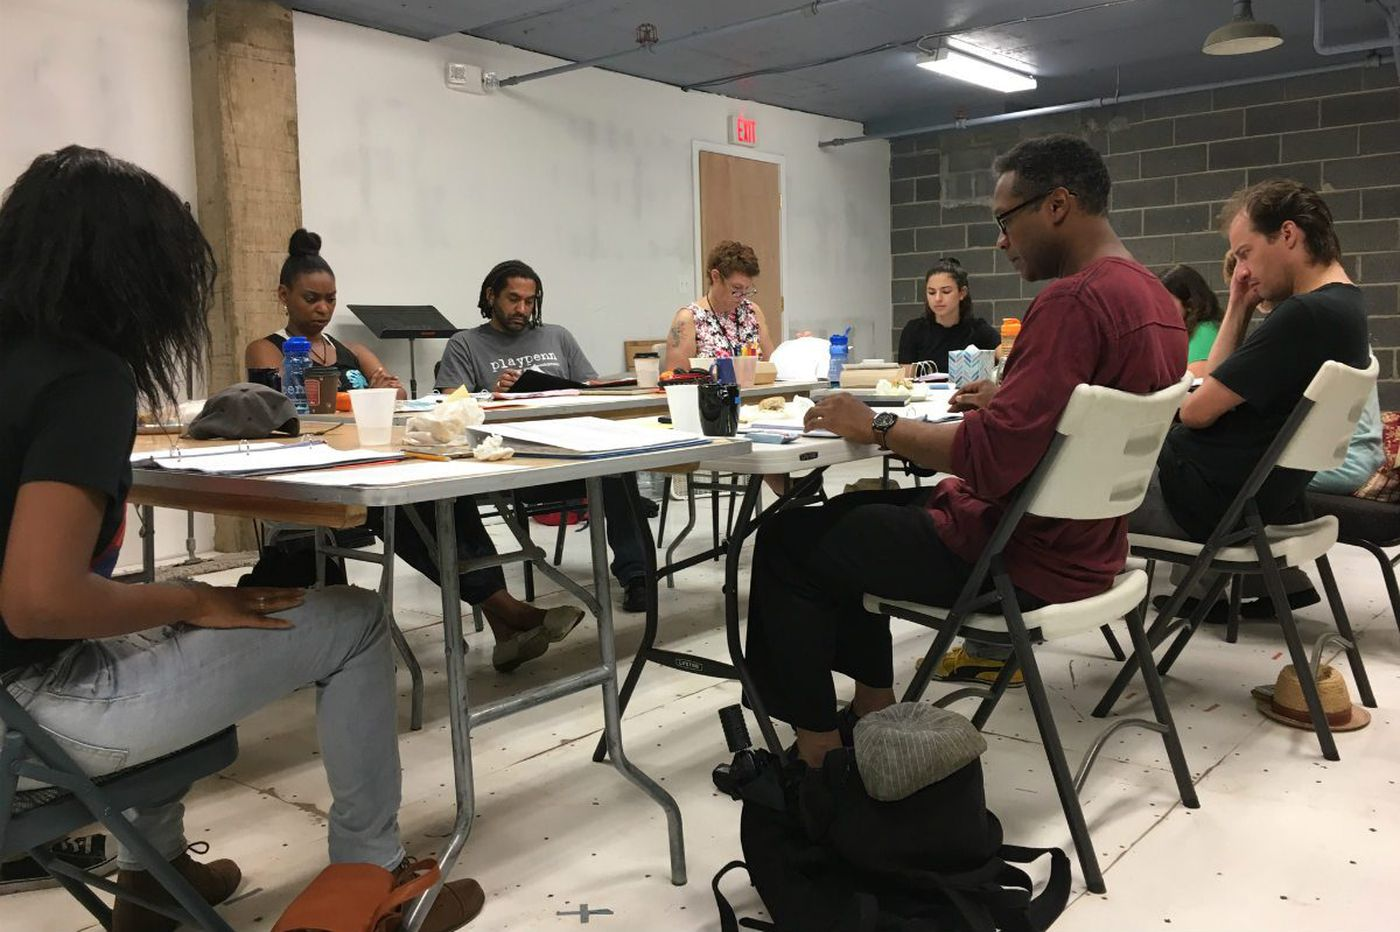 Six hot playwrights to watch win spots at Philly's influential PlayPenn workshop